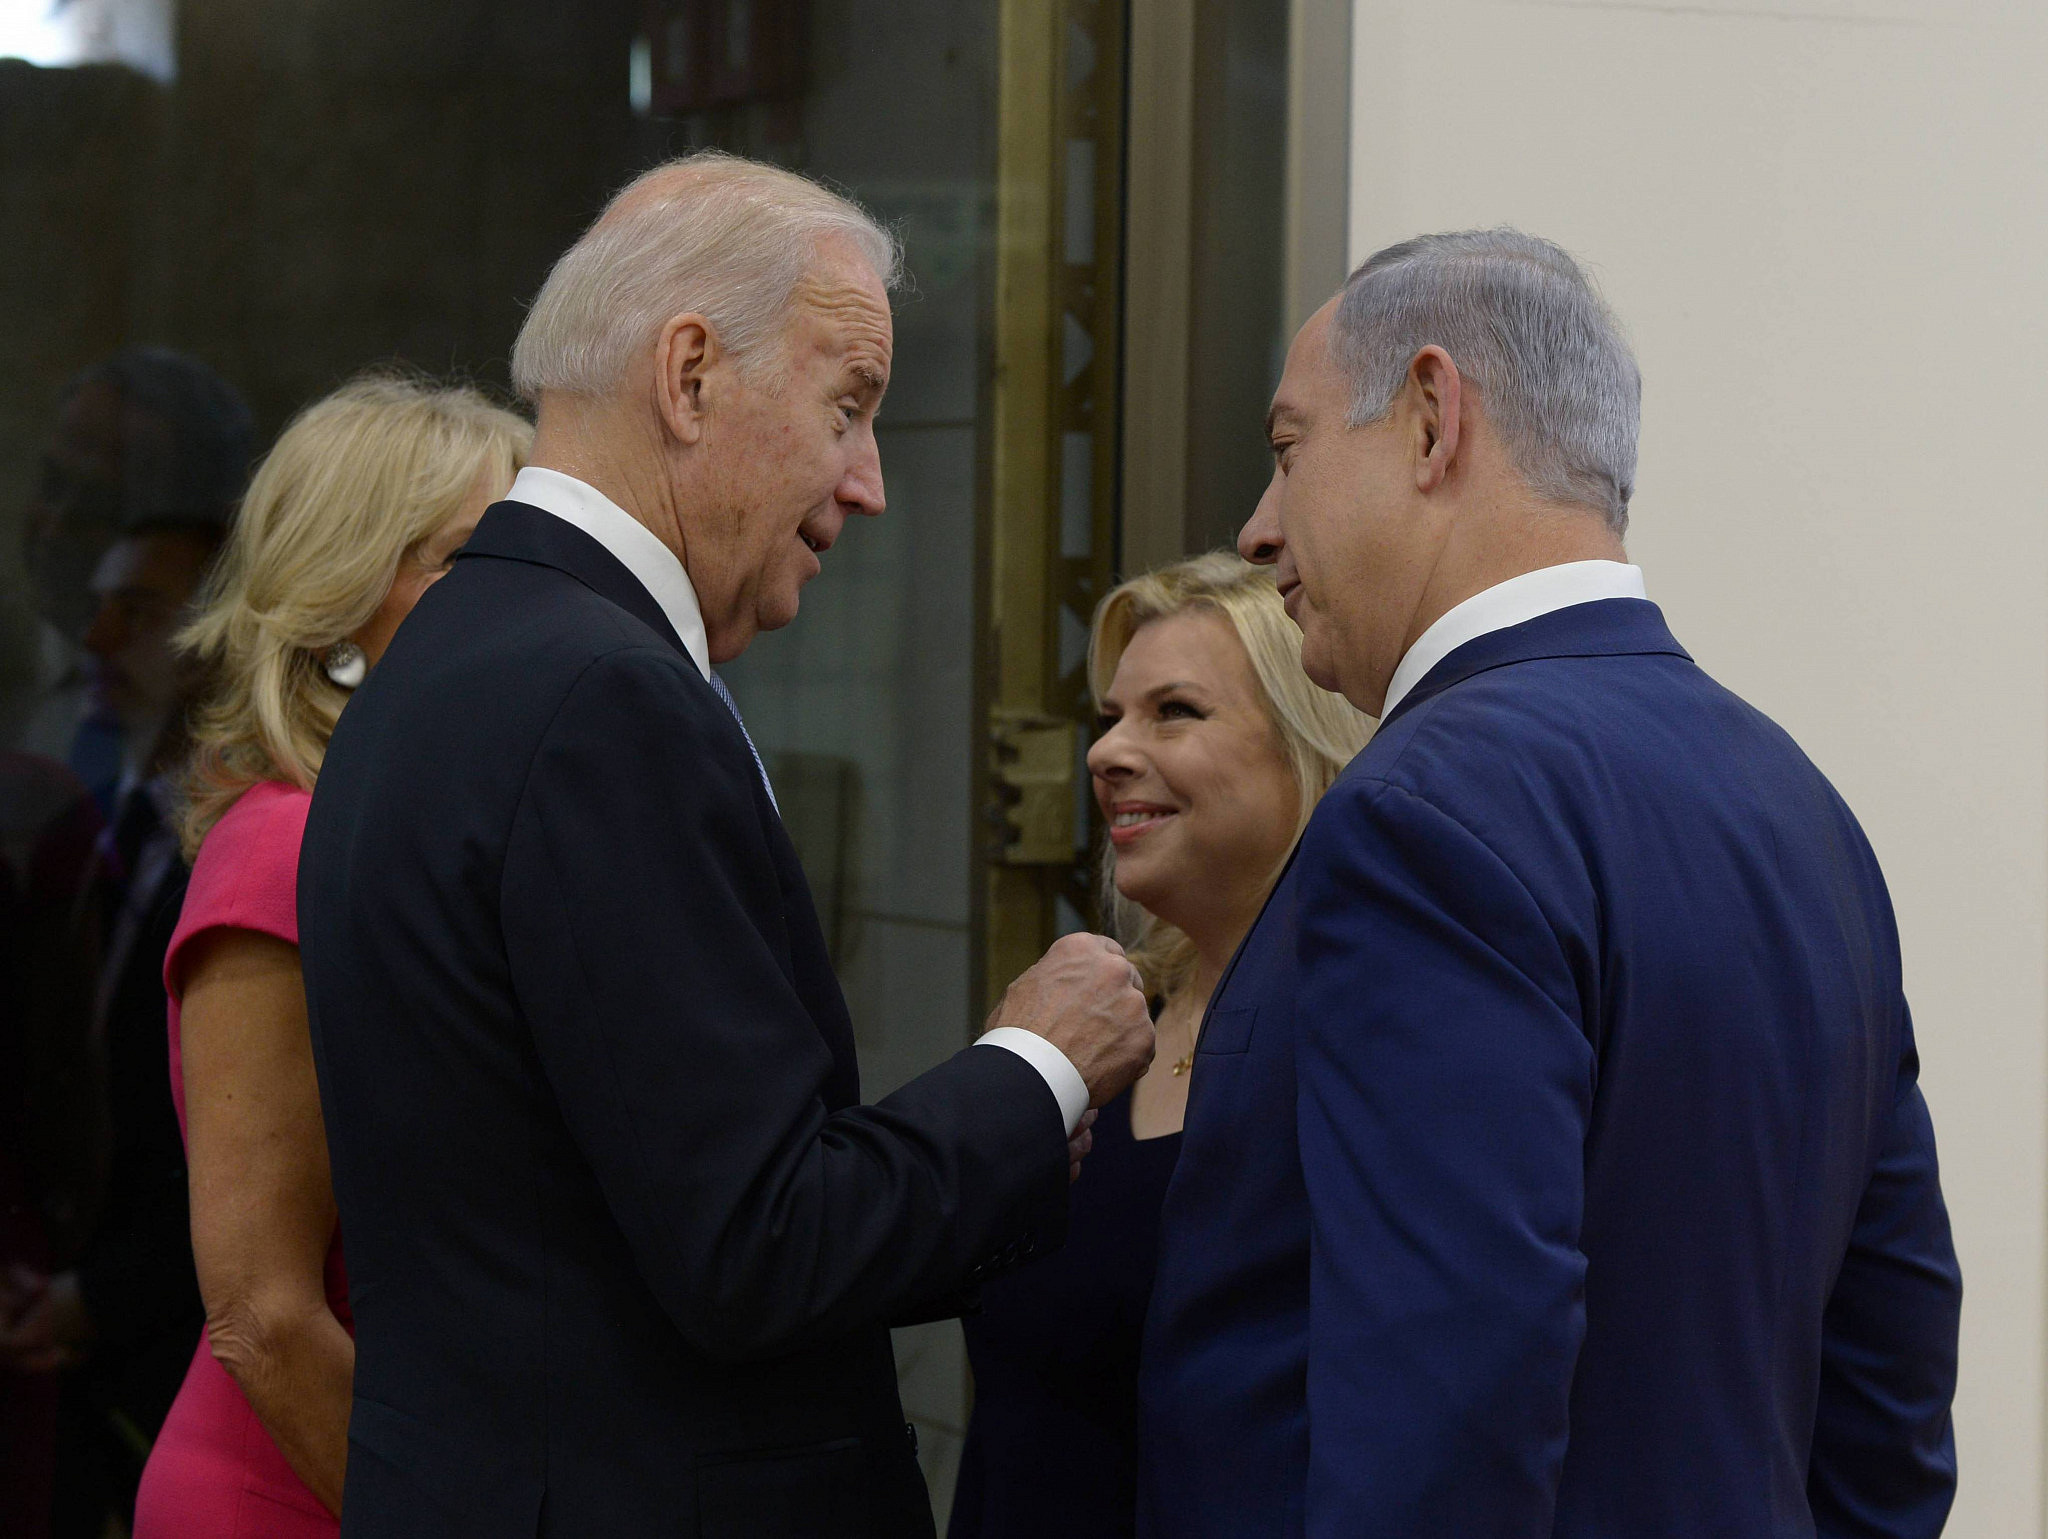 Israeli Prime Minister Benjamin Netanyahu and his wife Sara meet with United States Vice President Joe Biden and his wife Gil, at the Prime Minister's Office in Jerusalem, on March 9, 2016. (Amos Ben Gershom/GPO)